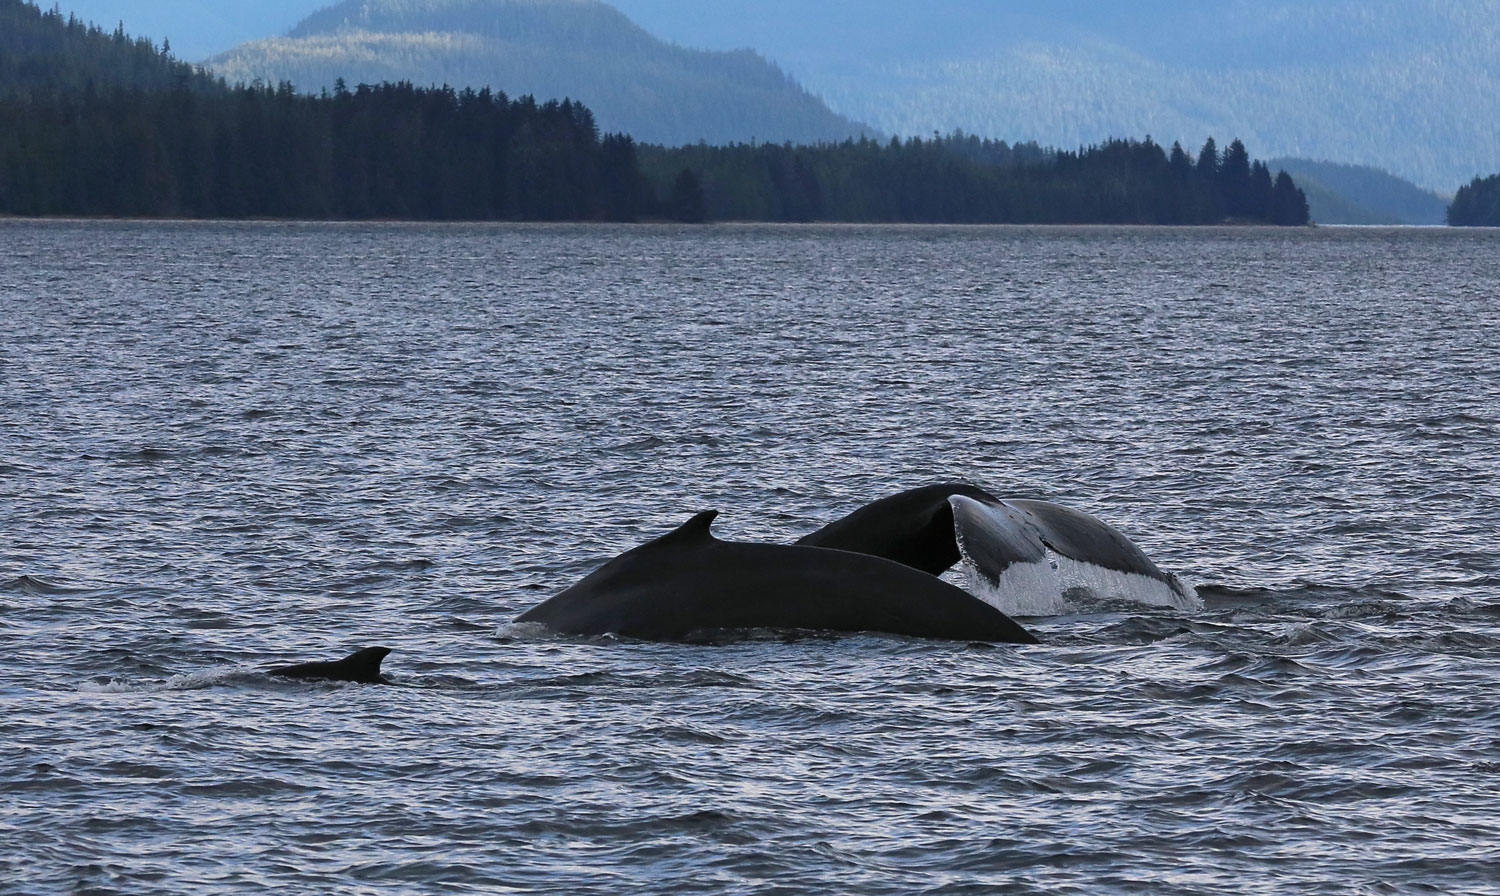 Humpback whales in Southeast Alaska